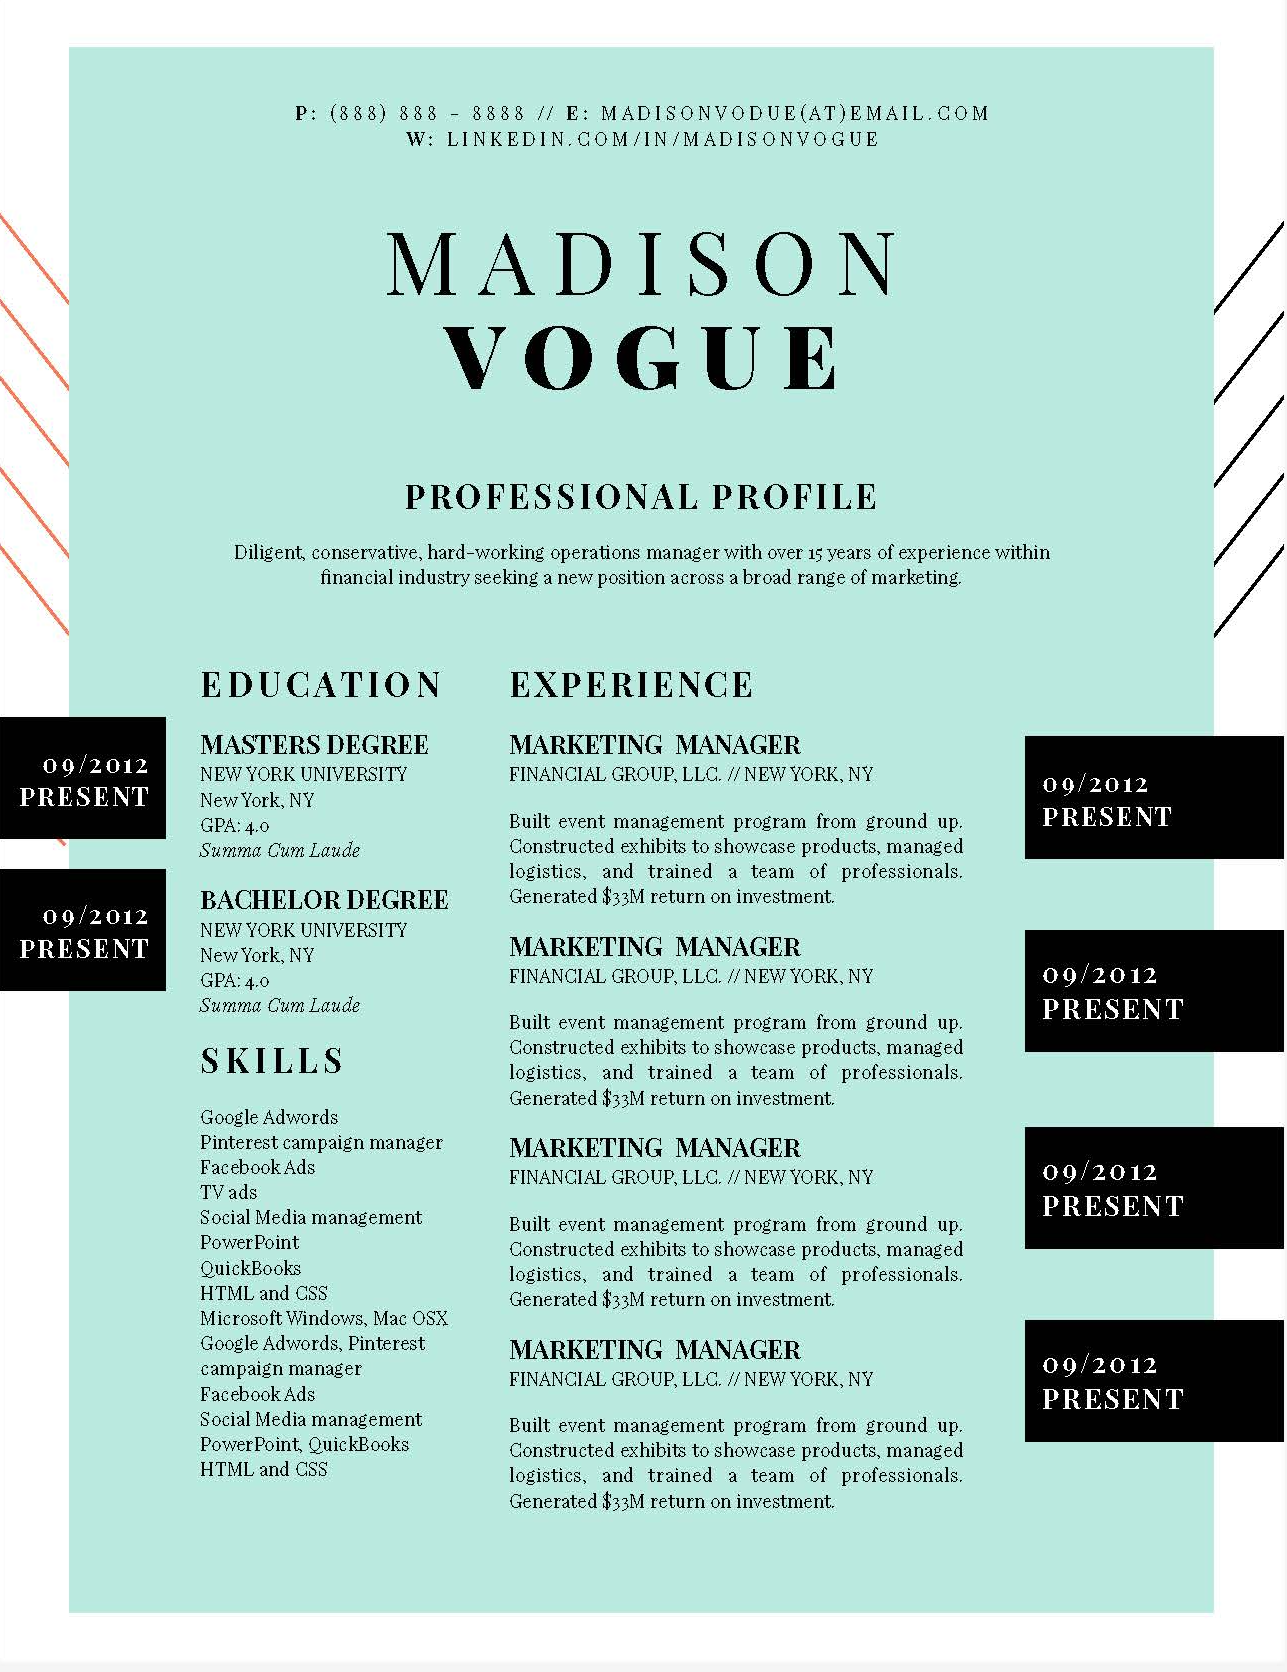 Madison Vogue Fashion Downloadable Resume Template And Cover Letter